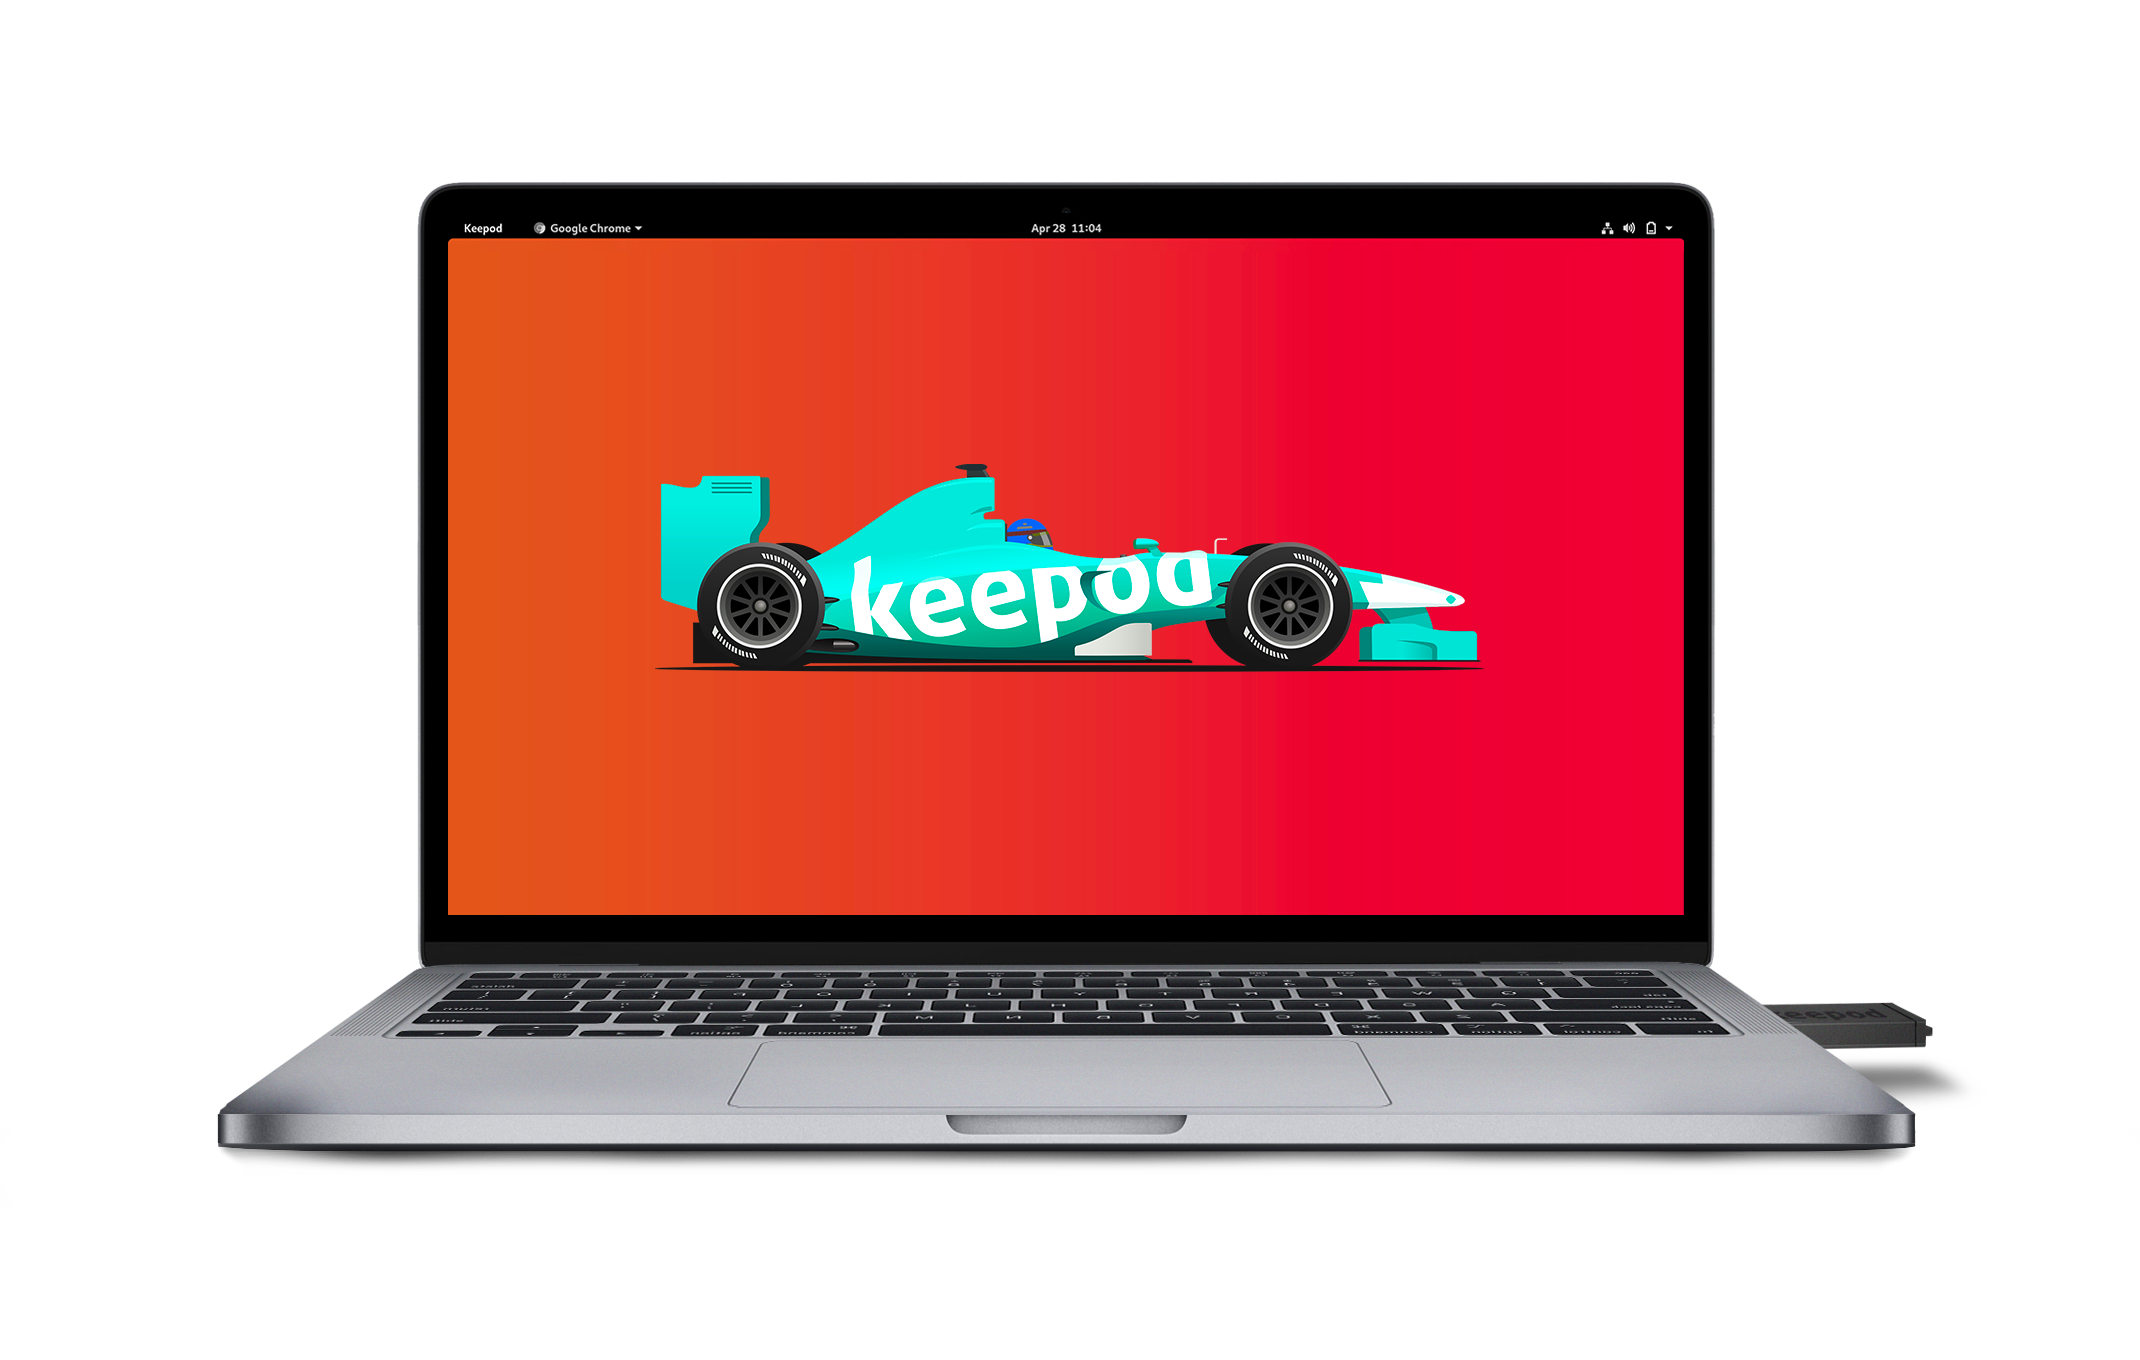 boot keepod on macbook pro 2020